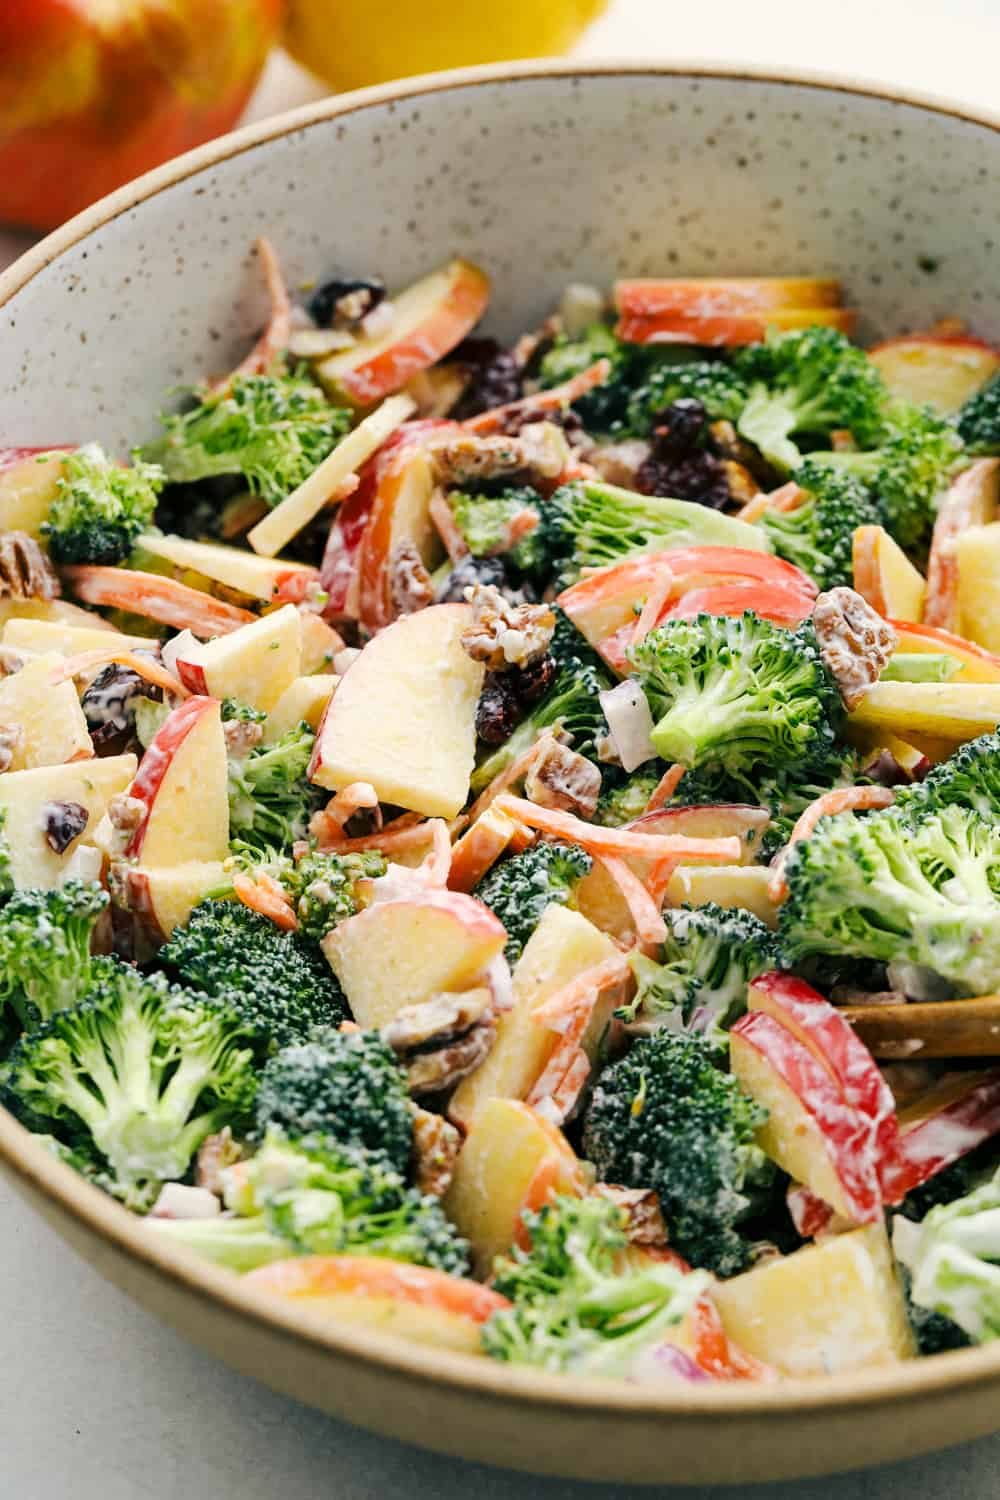 Broccoli apple salad with a tangy dressing in a bowl ready to eat.